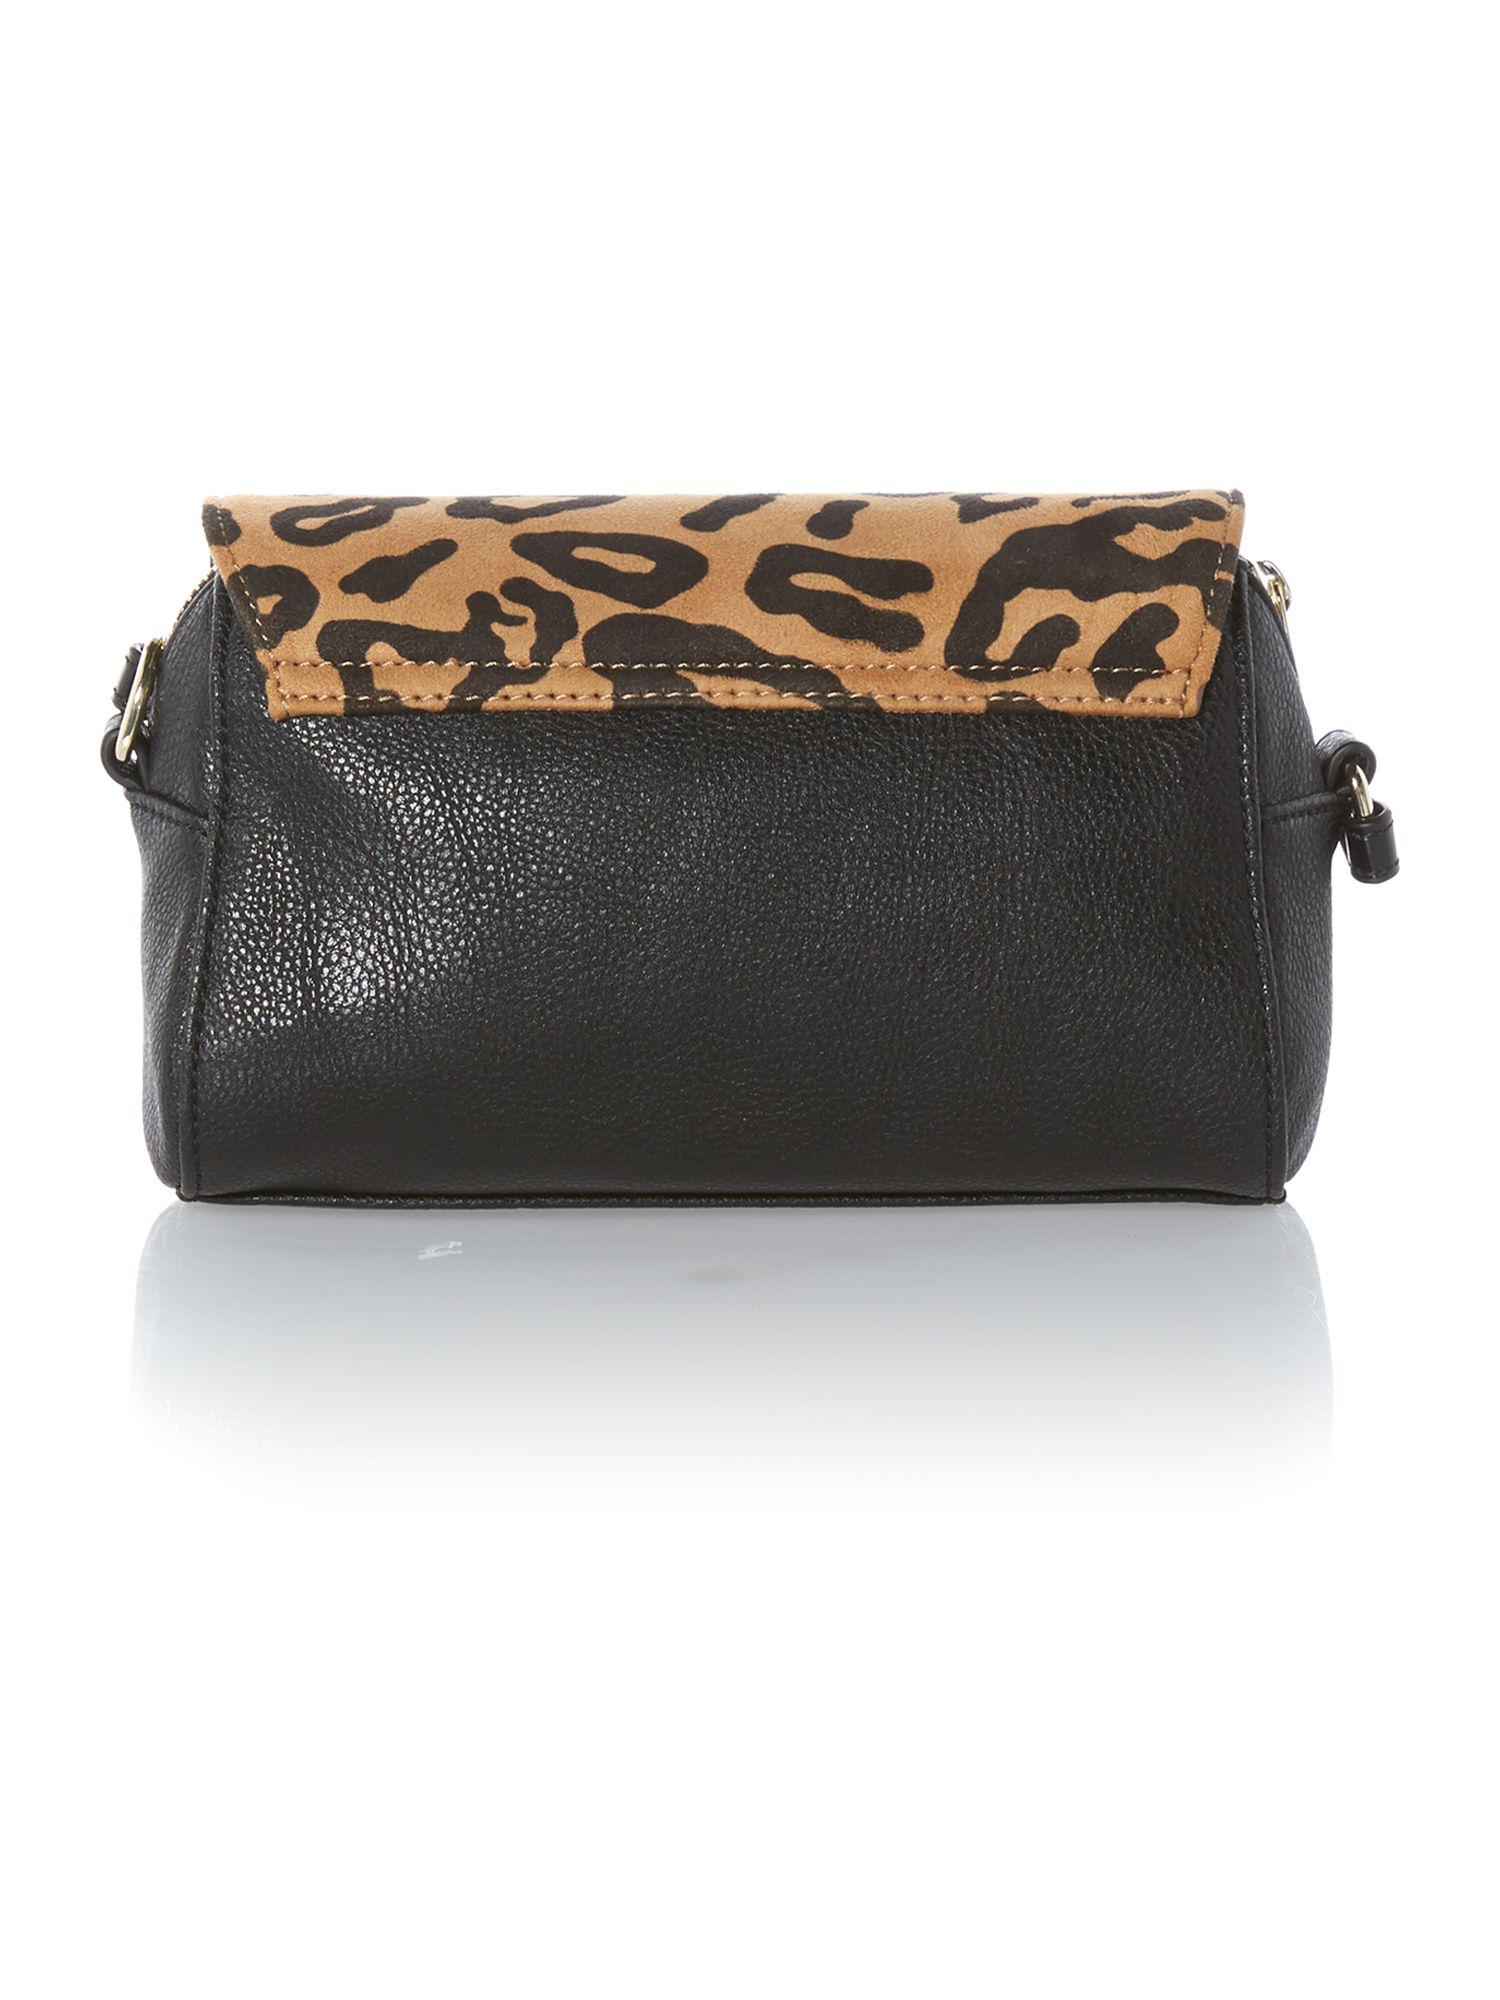 Leopard small flapover cross body bag